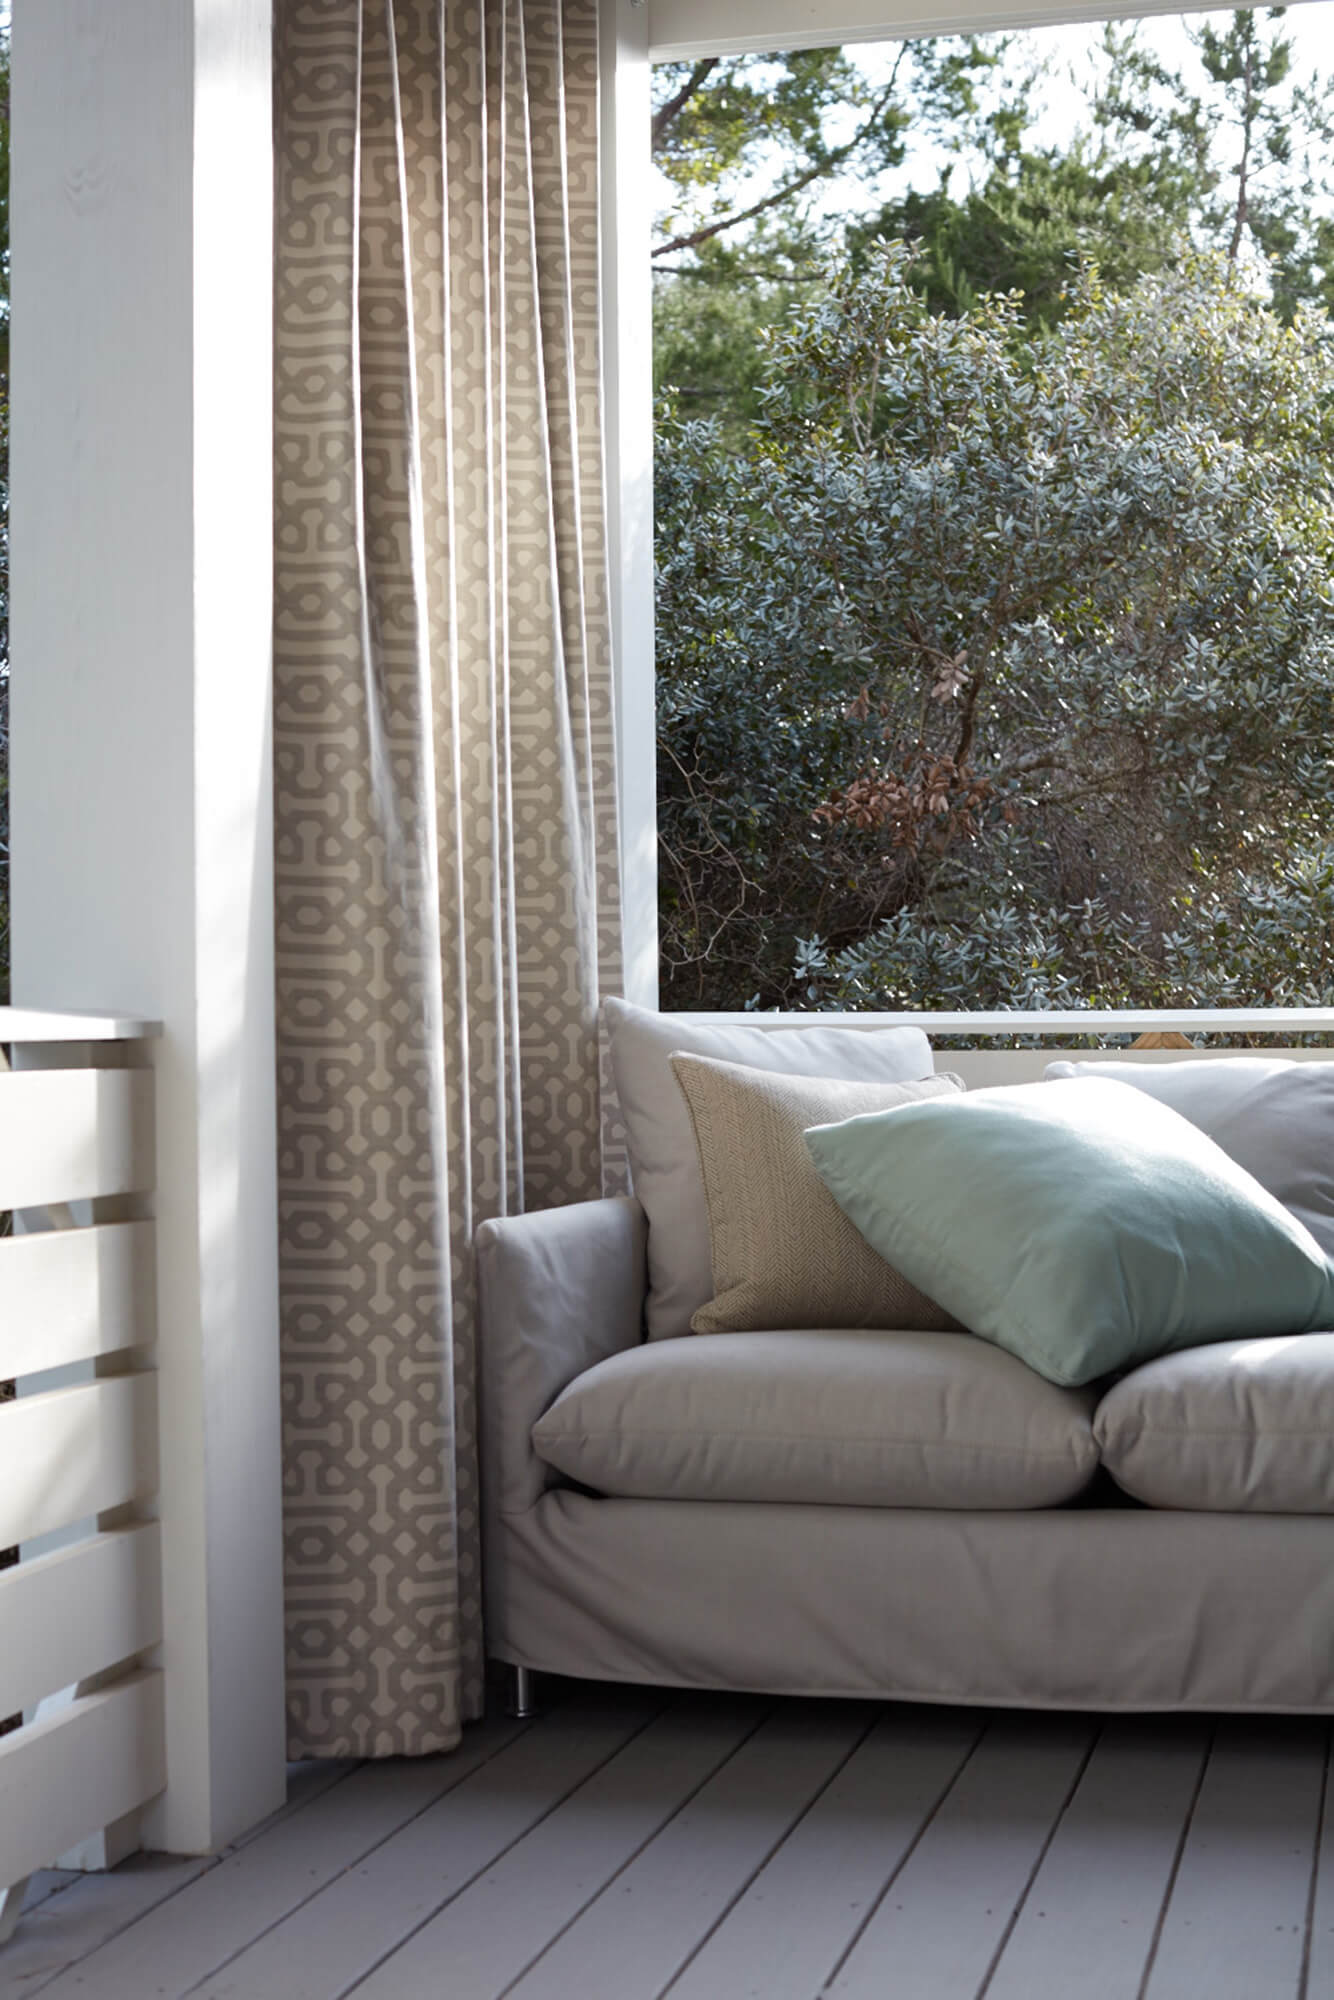 Fabrics for the Home - Sunbrella Fabrics